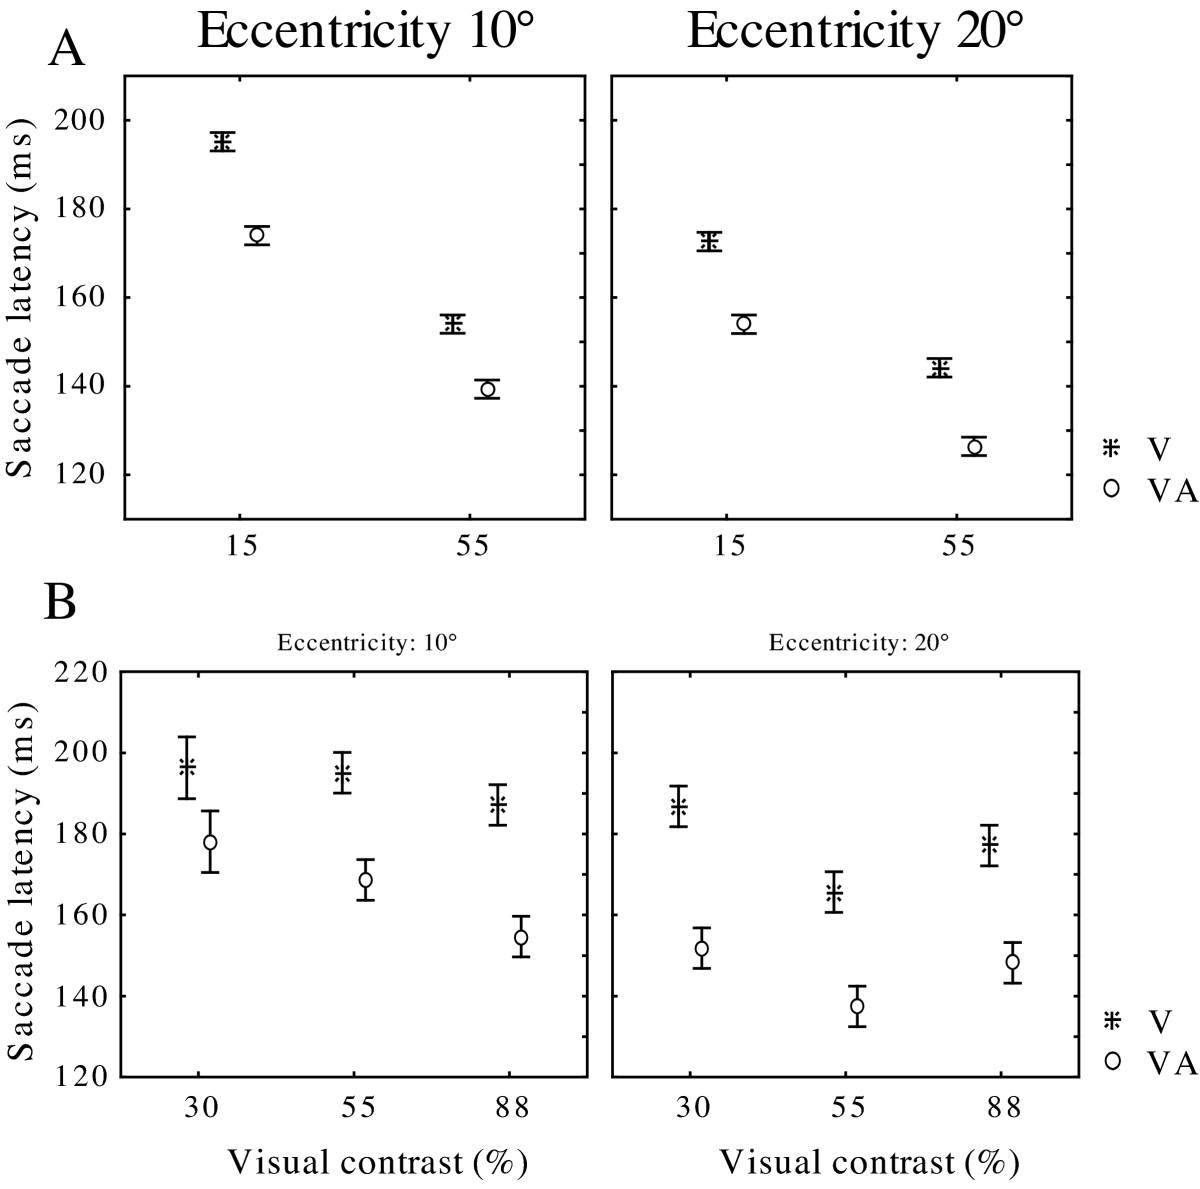 http://static-content.springer.com/image/art%3A10.1186%2F1471-2202-9-79/MediaObjects/12868_2008_Article_762_Fig2_HTML.jpg